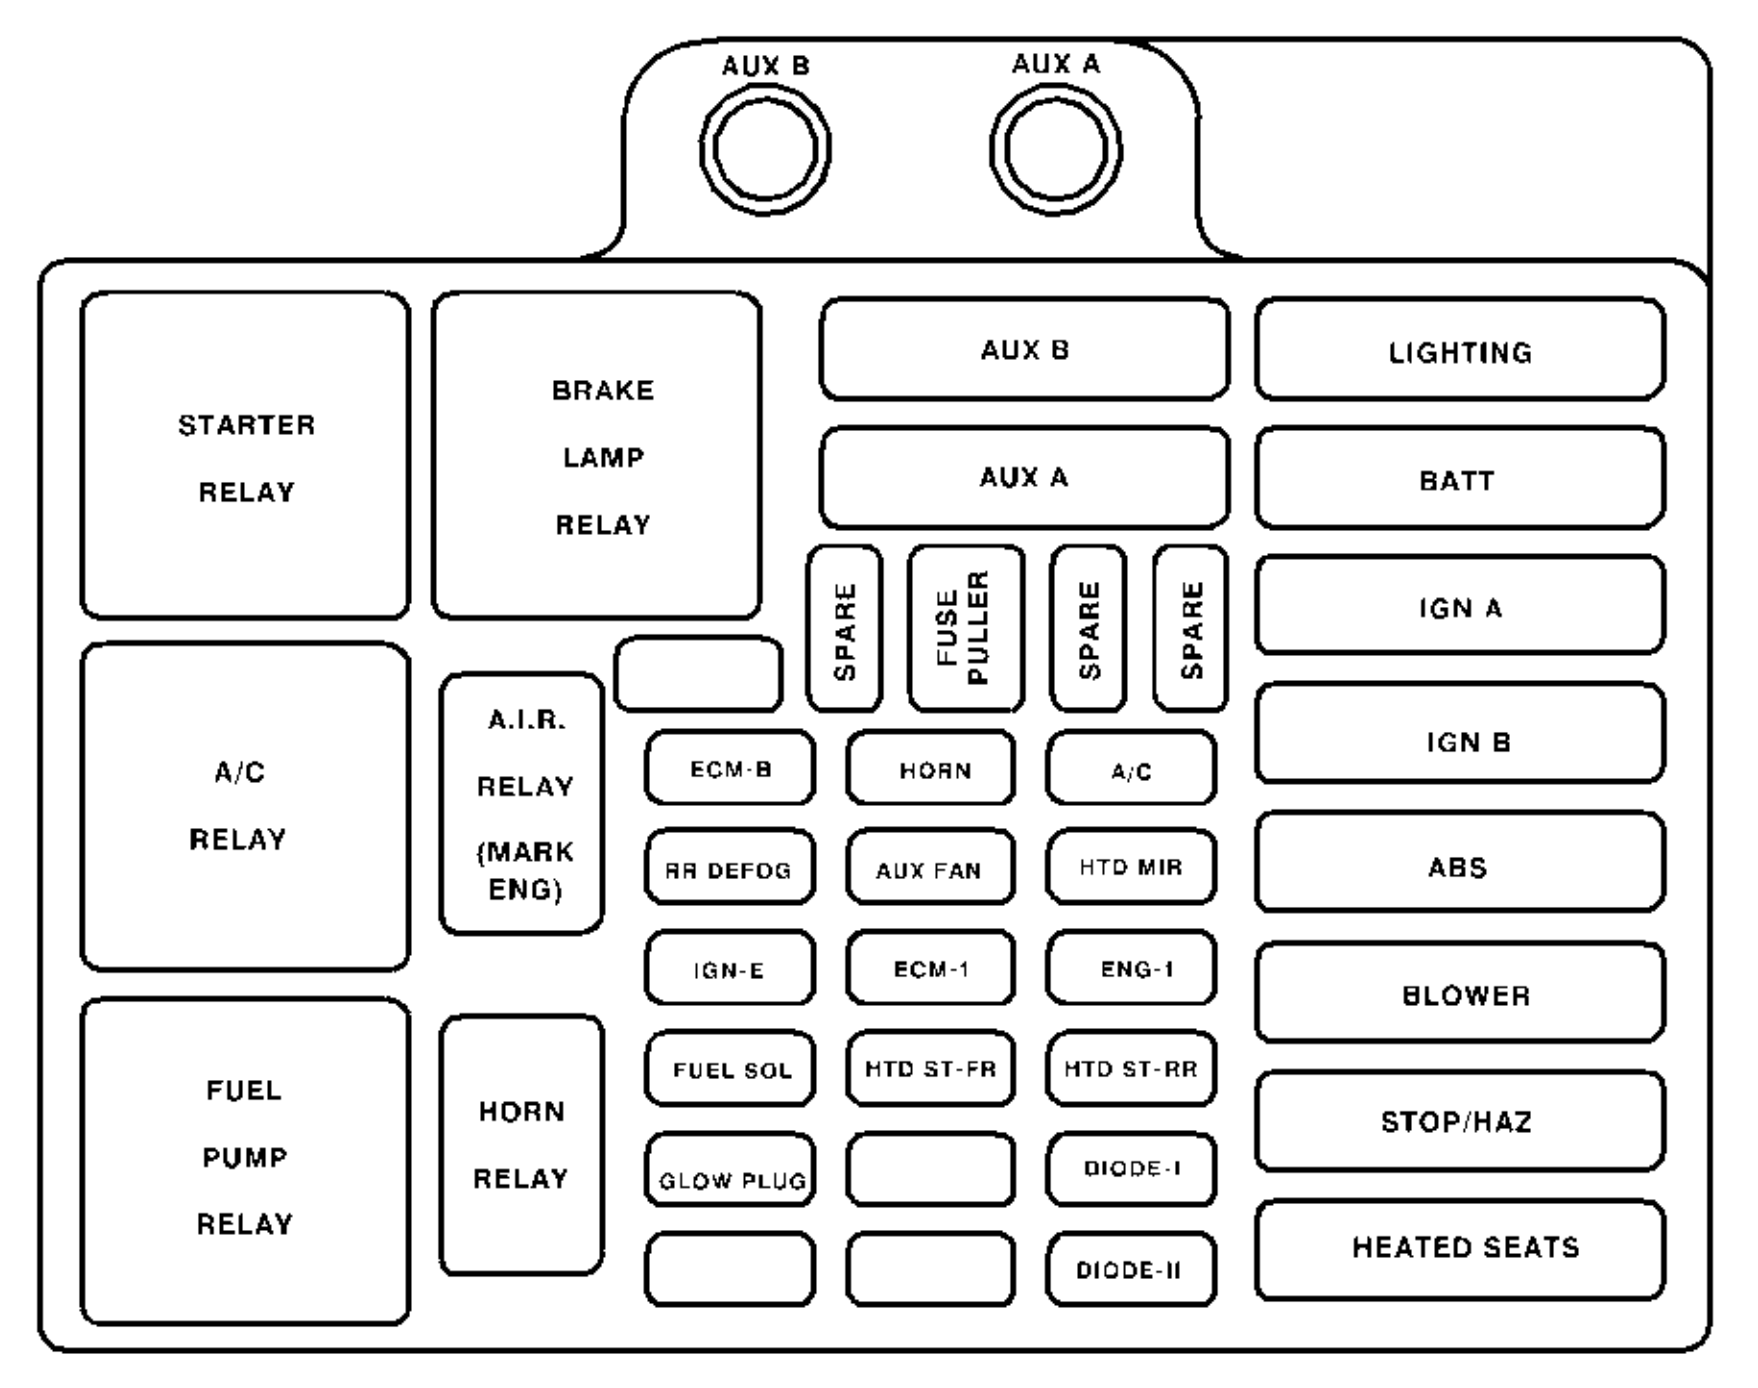 hight resolution of 1998 chevy silverado fuse box diagram my wiring diagramunder hood fuse box diagram for 98 chevy